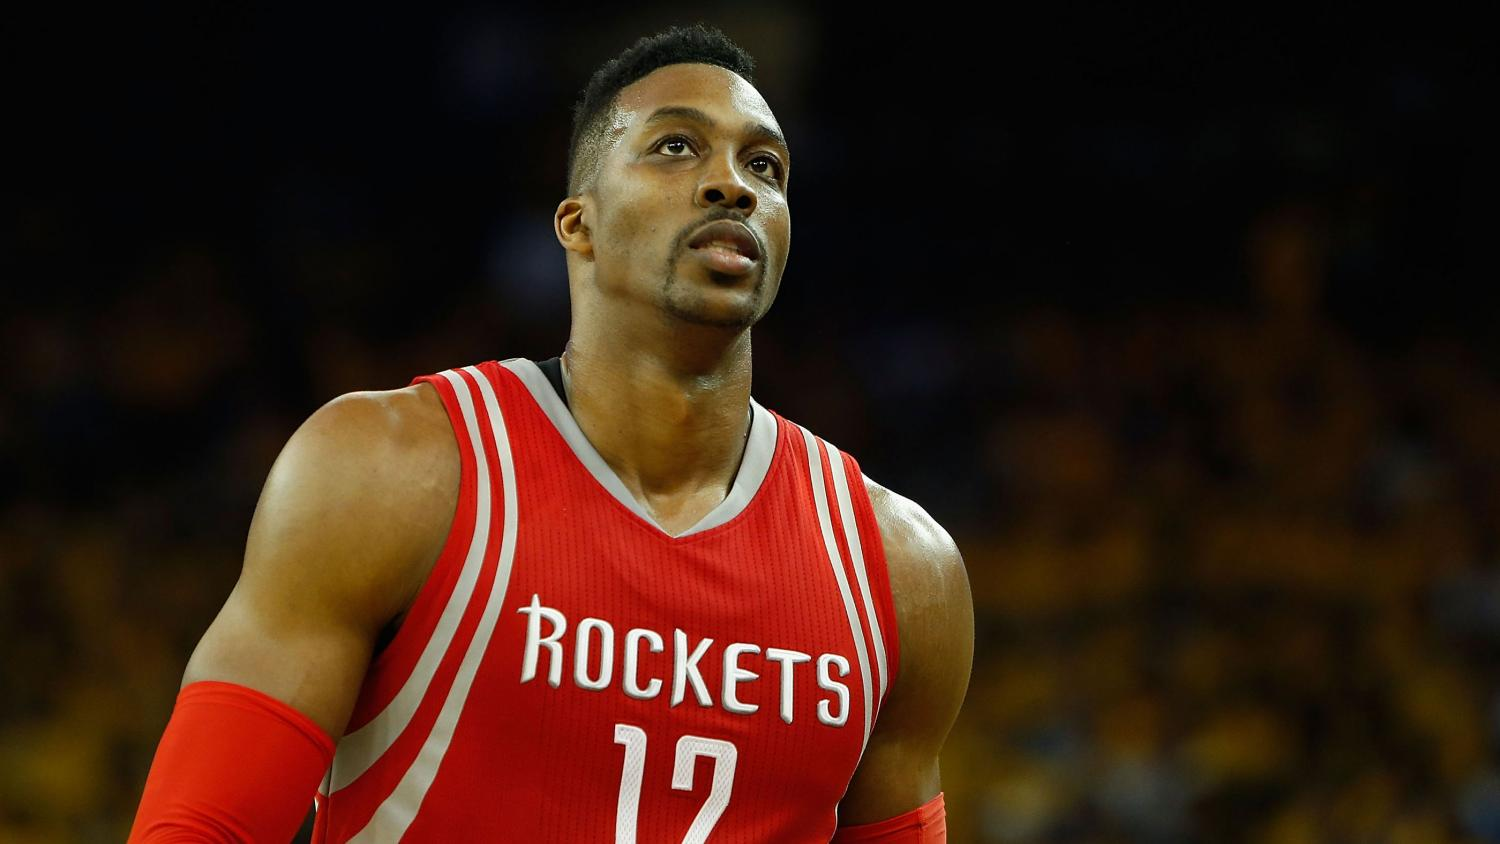 Dwight-howard-rockets-contract-free-agent